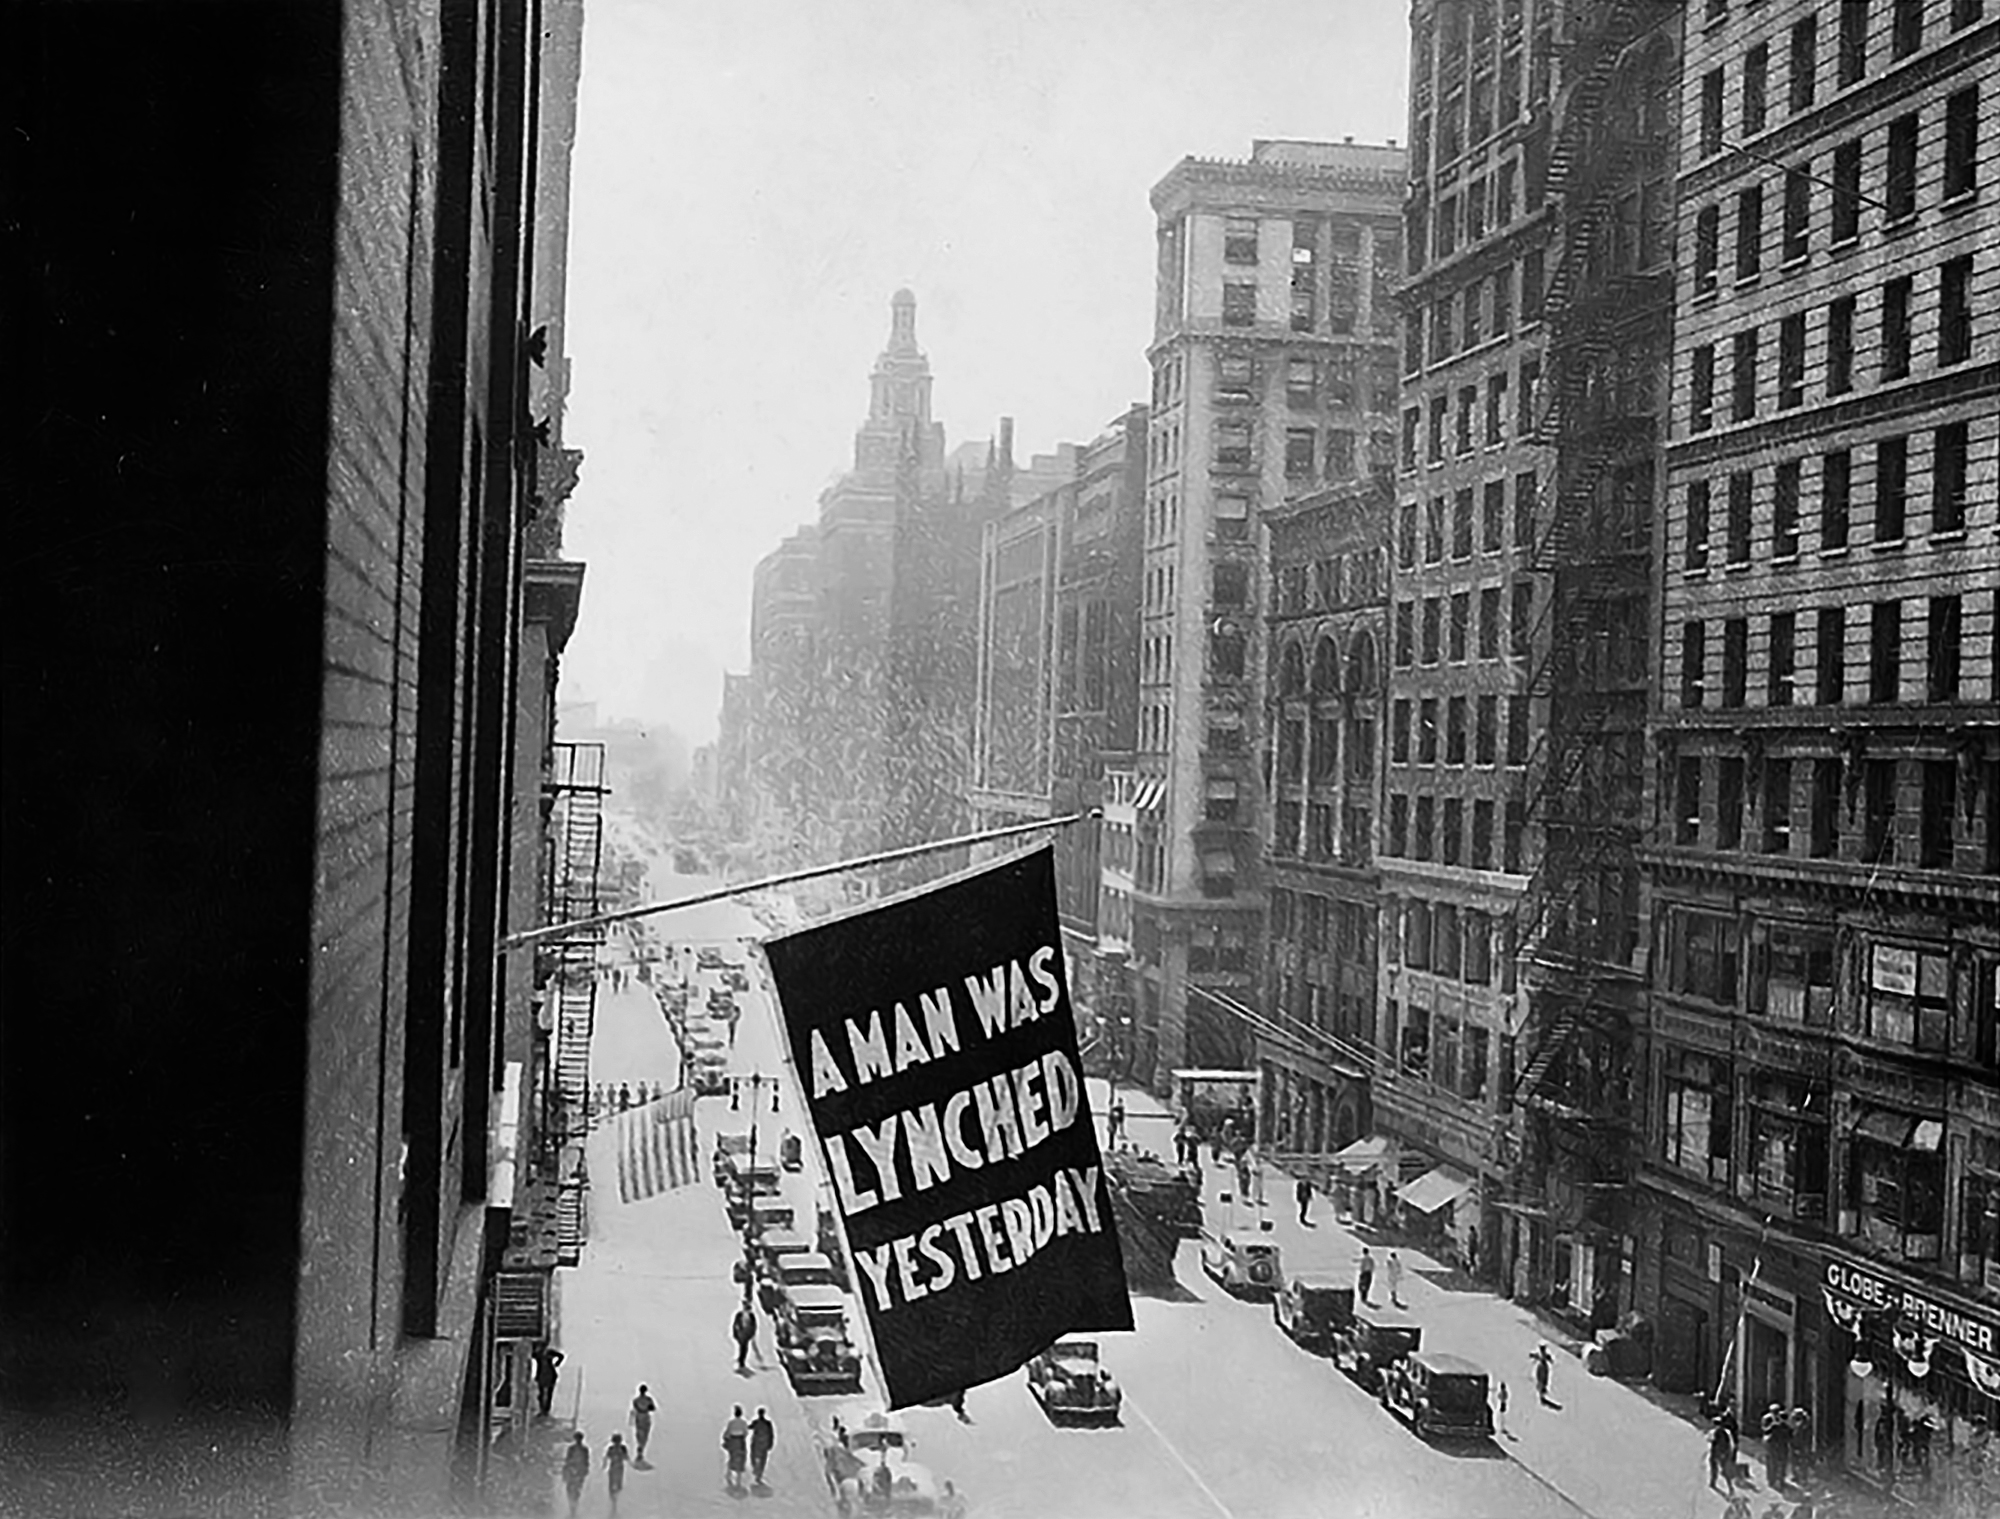 An anti-lynching banner flew outside NAACP headquarters in Manhattan, New York, from the early 1900s until 1938.